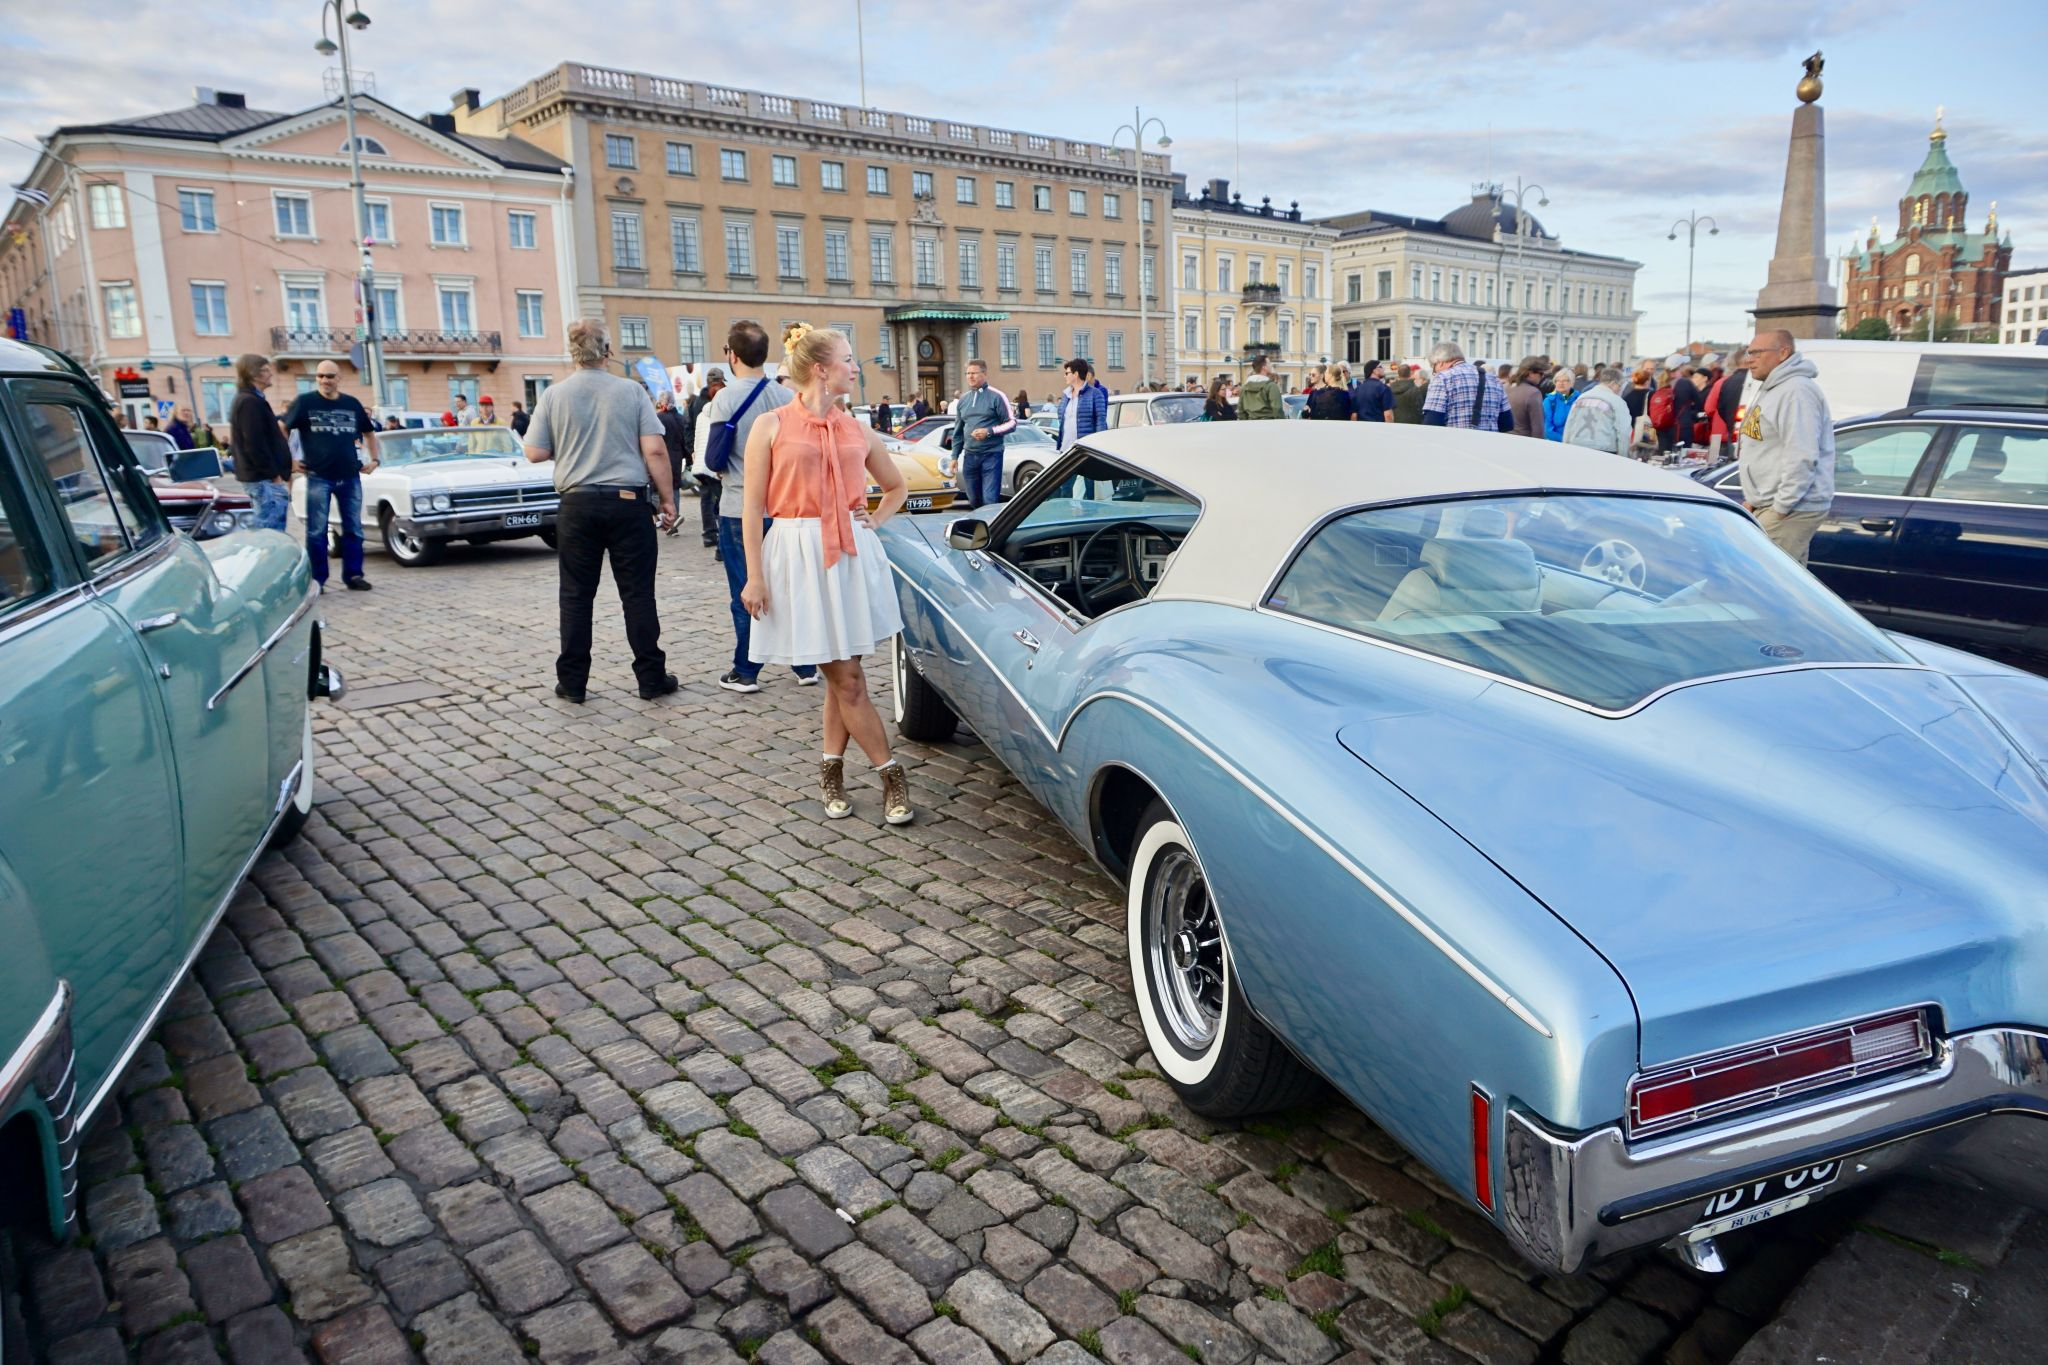 Vintage and Classic car gathering in Helsinki